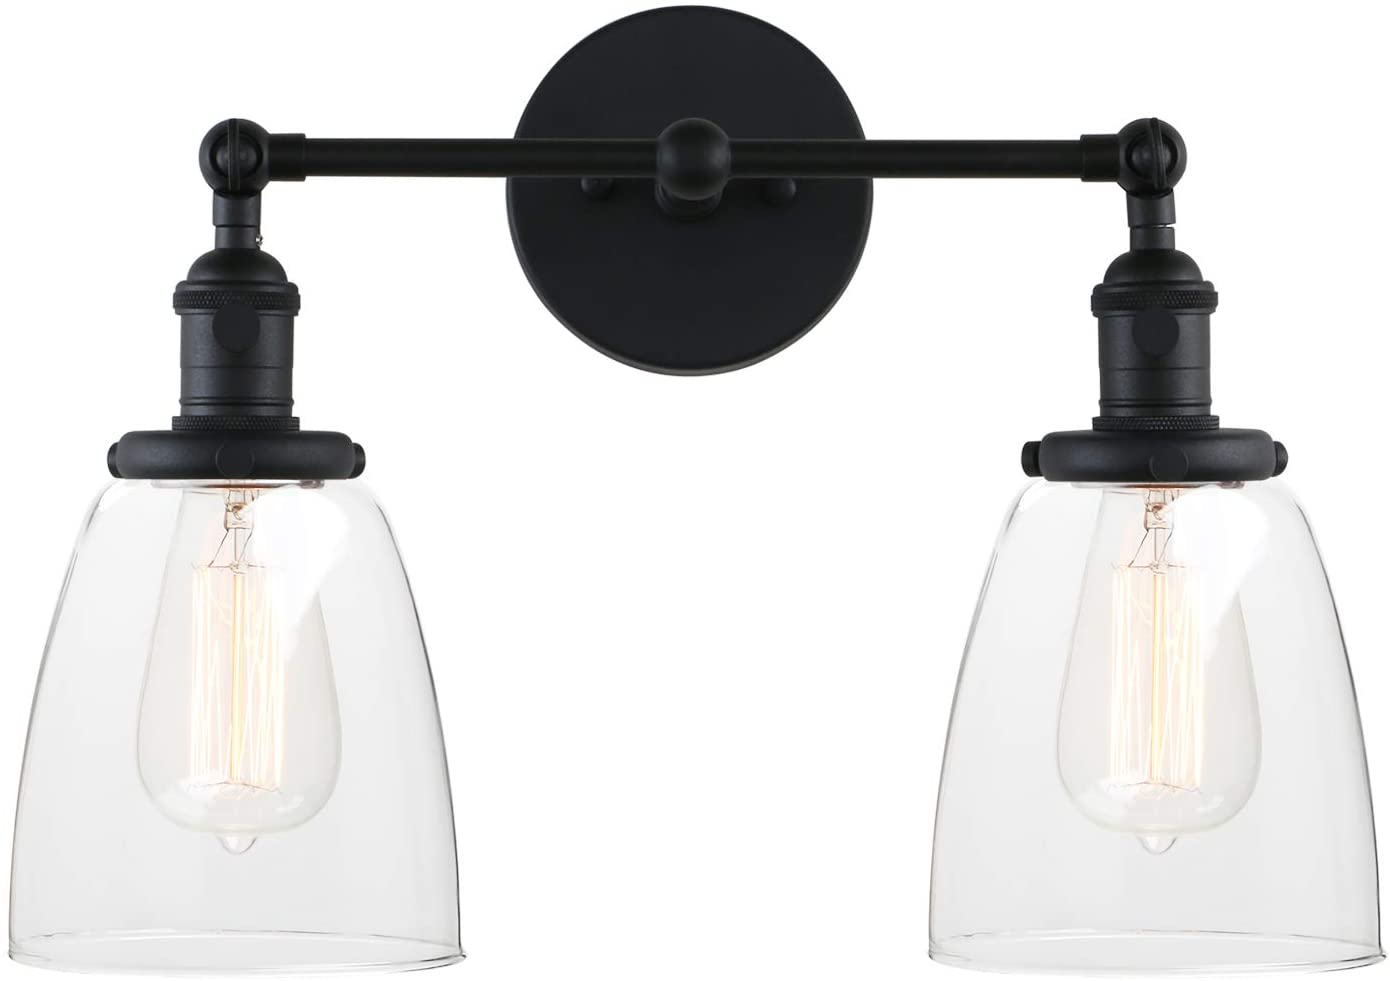 Pathson 2 Light Wall Sconce, Vintage Style Industrial Wall Light Fixtures with Oval Cone Clear Glass Shade for Bathroom Lighting